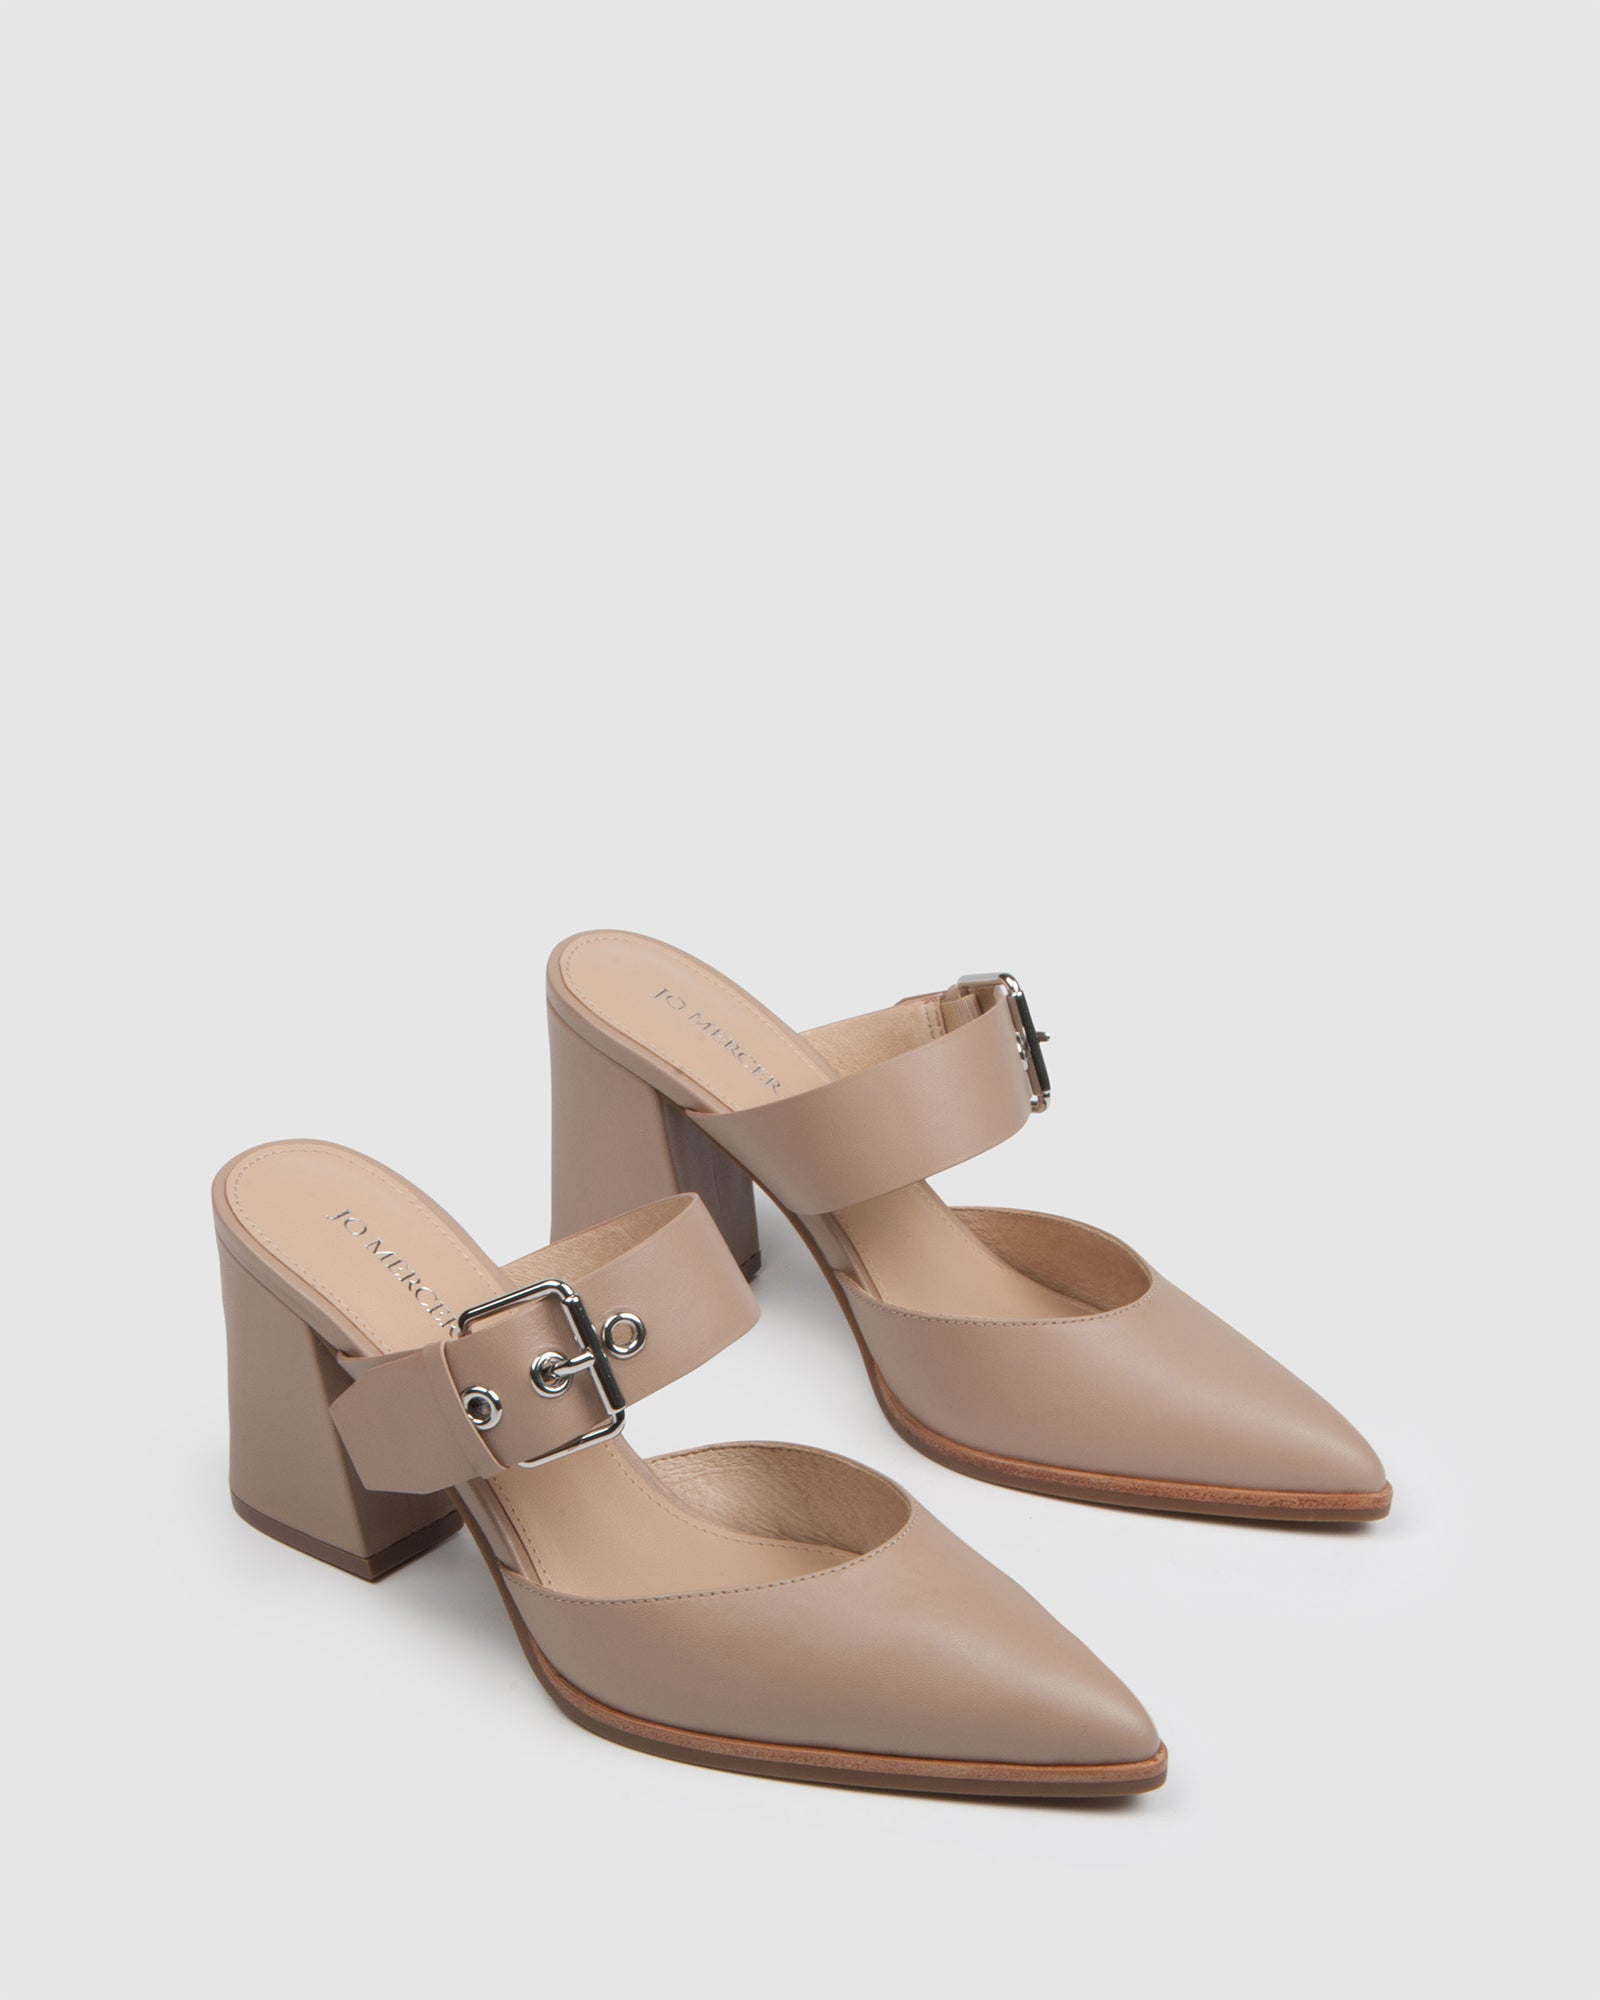 PIVOT MID HEELS BEIGE LEATHER